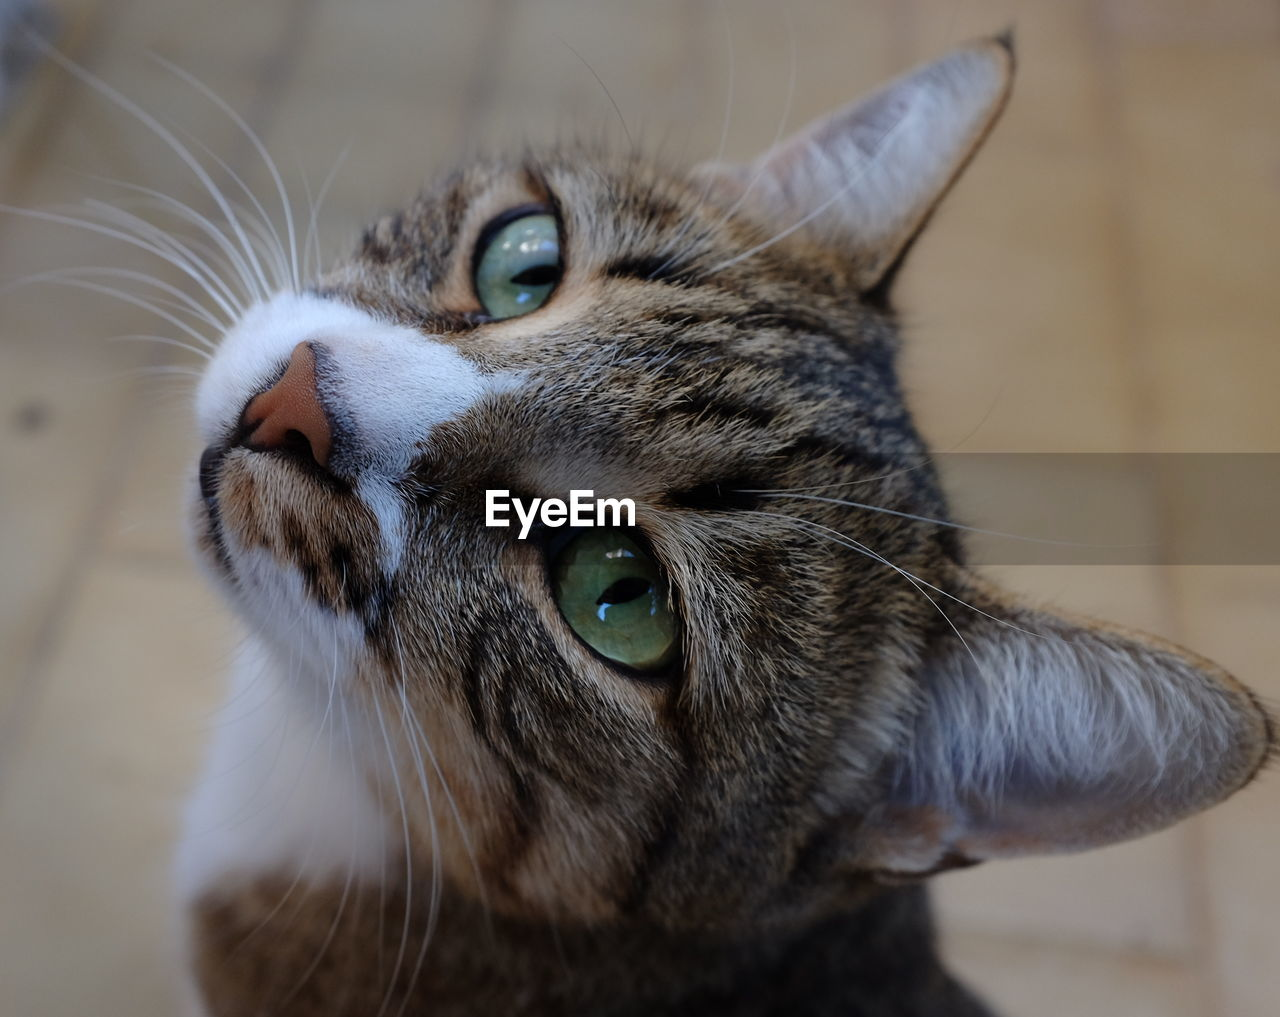 cat, feline, one animal, domestic cat, domestic animals, animal, animal themes, mammal, domestic, pets, close-up, vertebrate, whisker, no people, animal body part, focus on foreground, indoors, looking, looking away, animal head, animal eye, yellow eyes, tabby, animal mouth